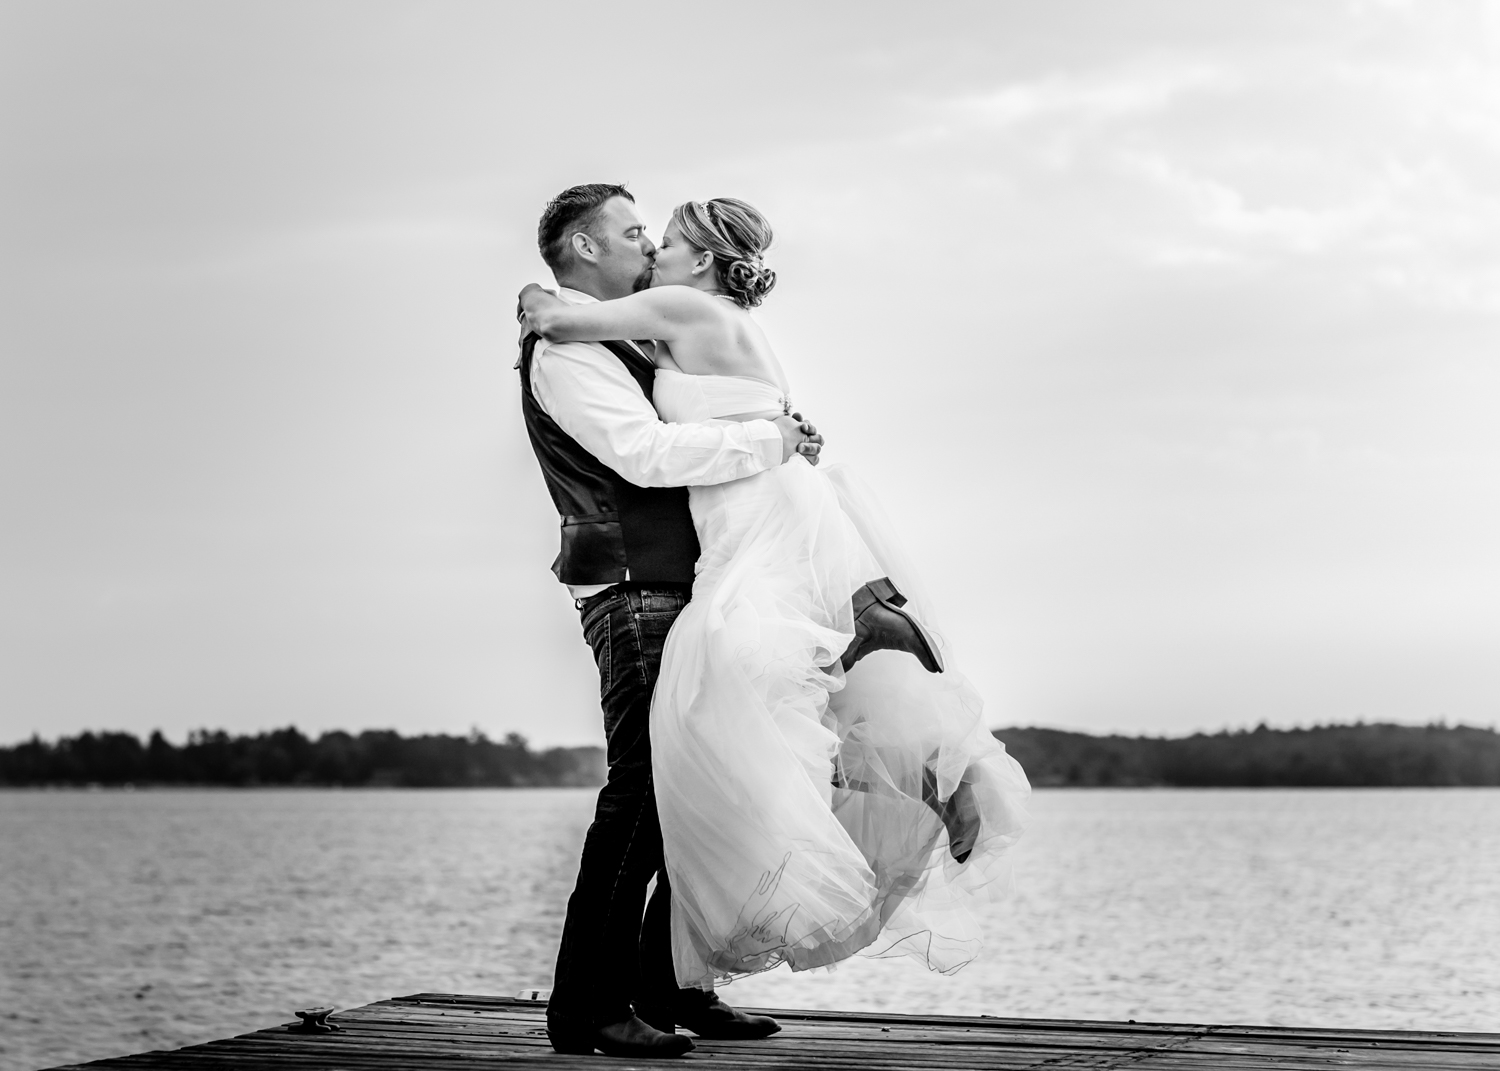 wedding couple kissing - Wedding Photography Tip - 3 Ways to Tame a Bridezilla